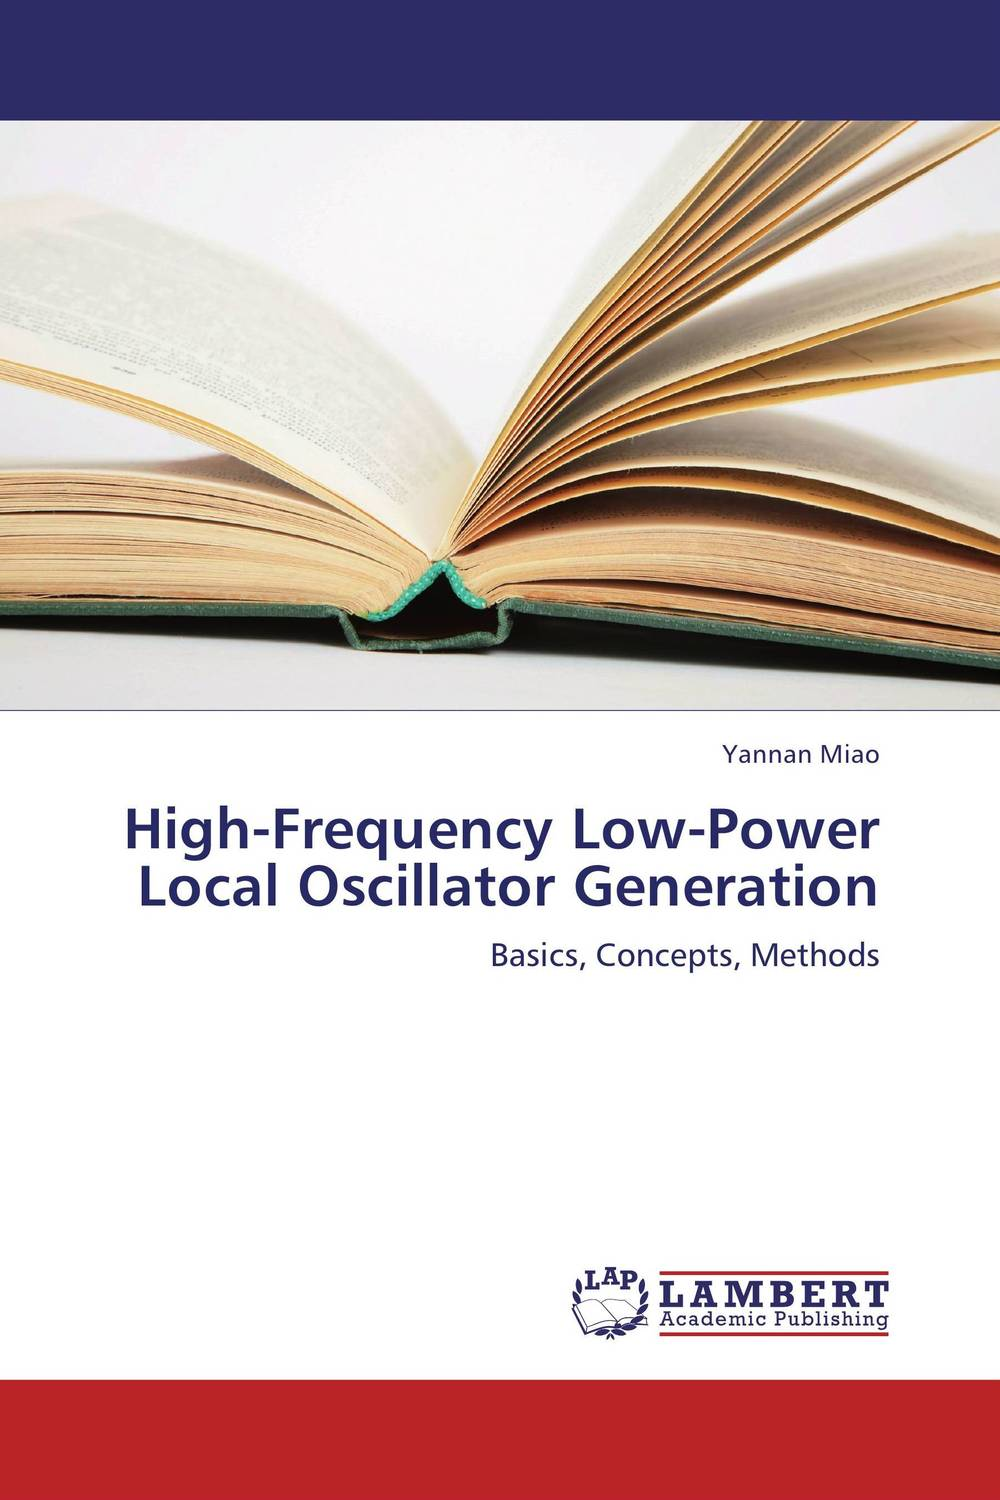 High-Frequency Low-Power Local Oscillator Generation